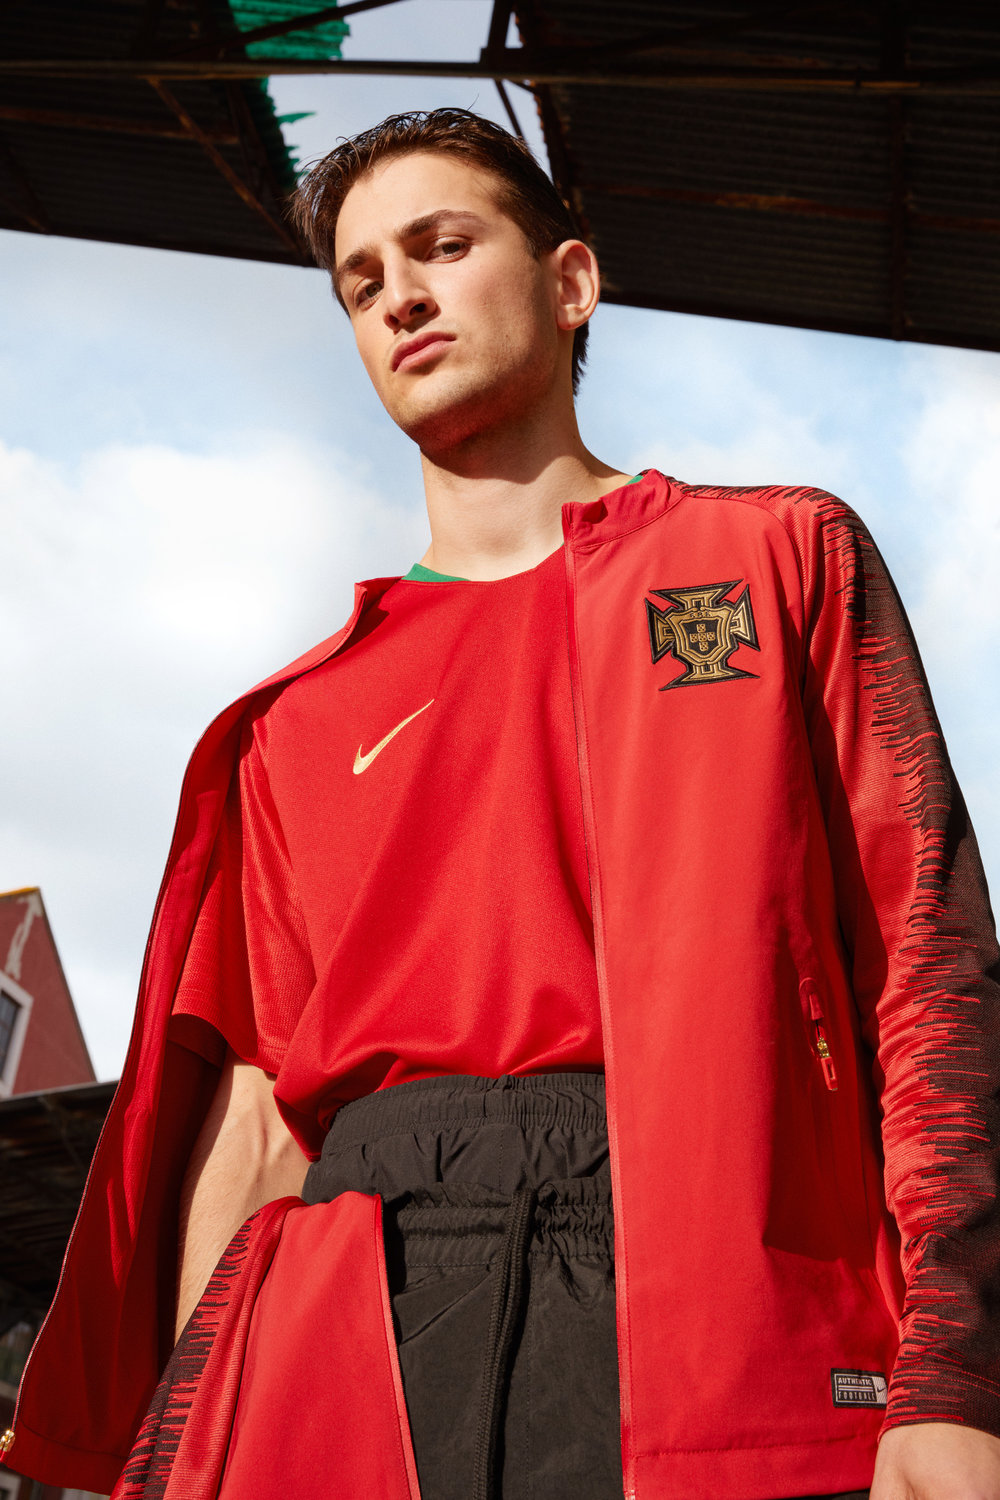 Nike_News_2018_Portuguese_Football_Federation_Collection_12_78120.jpg